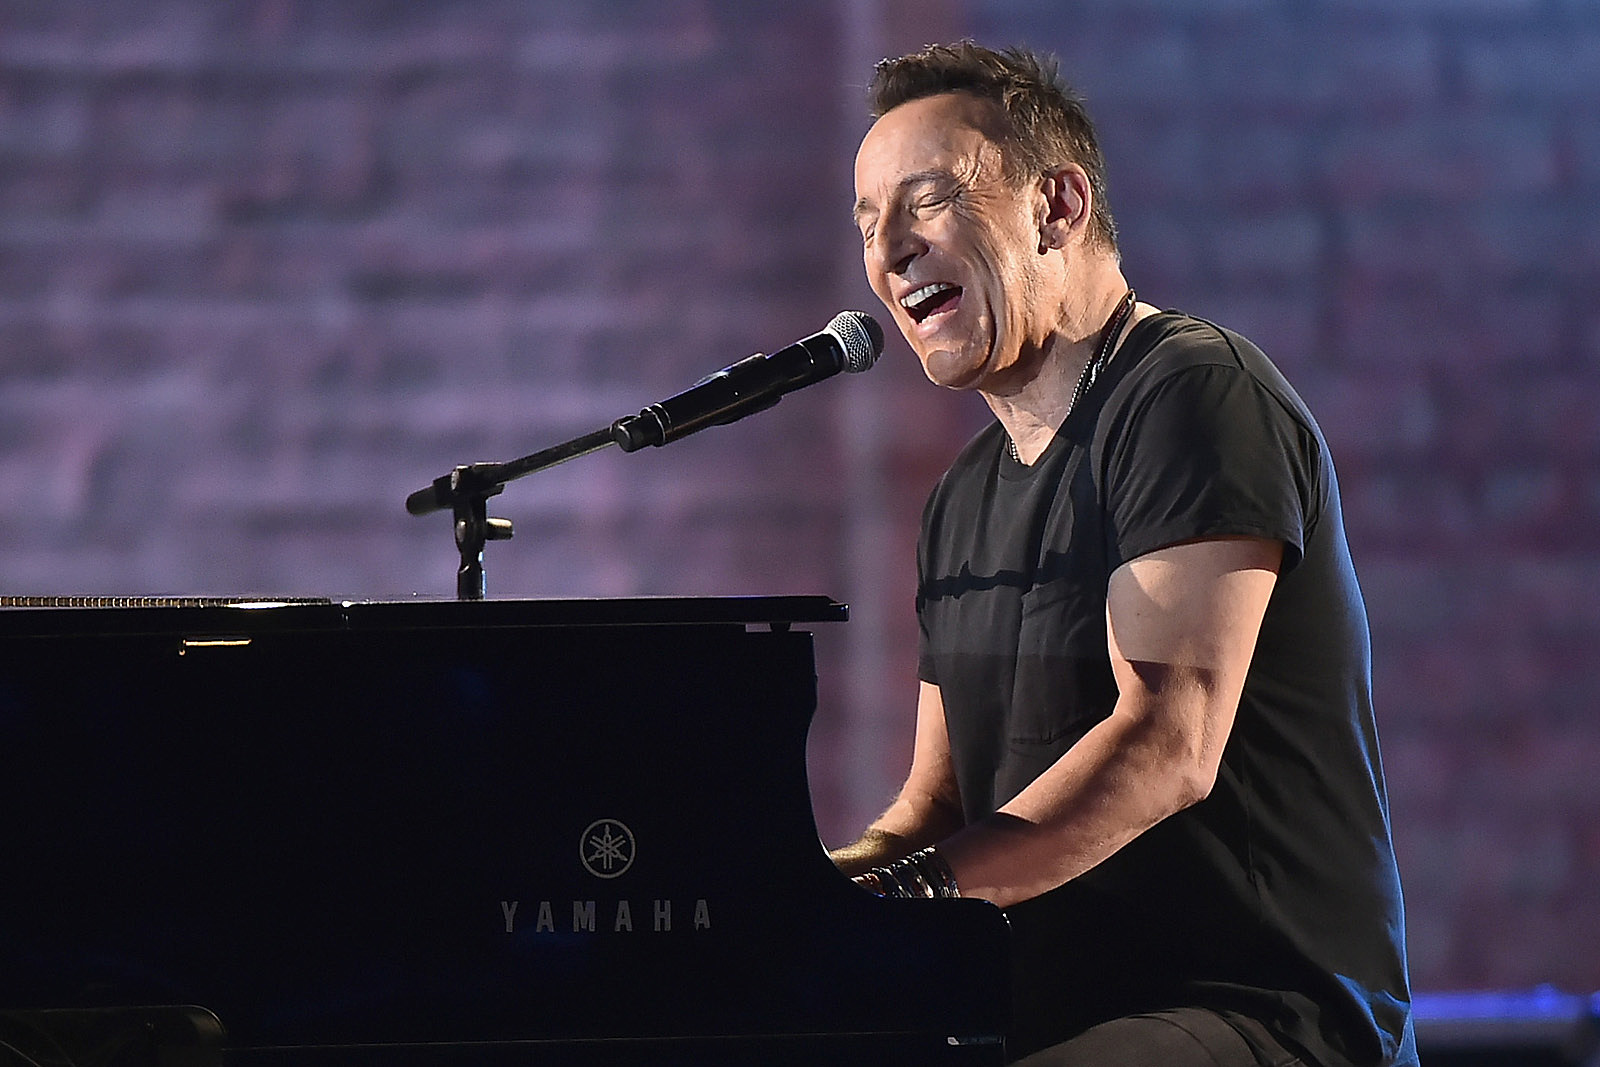 Bruce Springsteen's Broadway Show Coming to Netflix